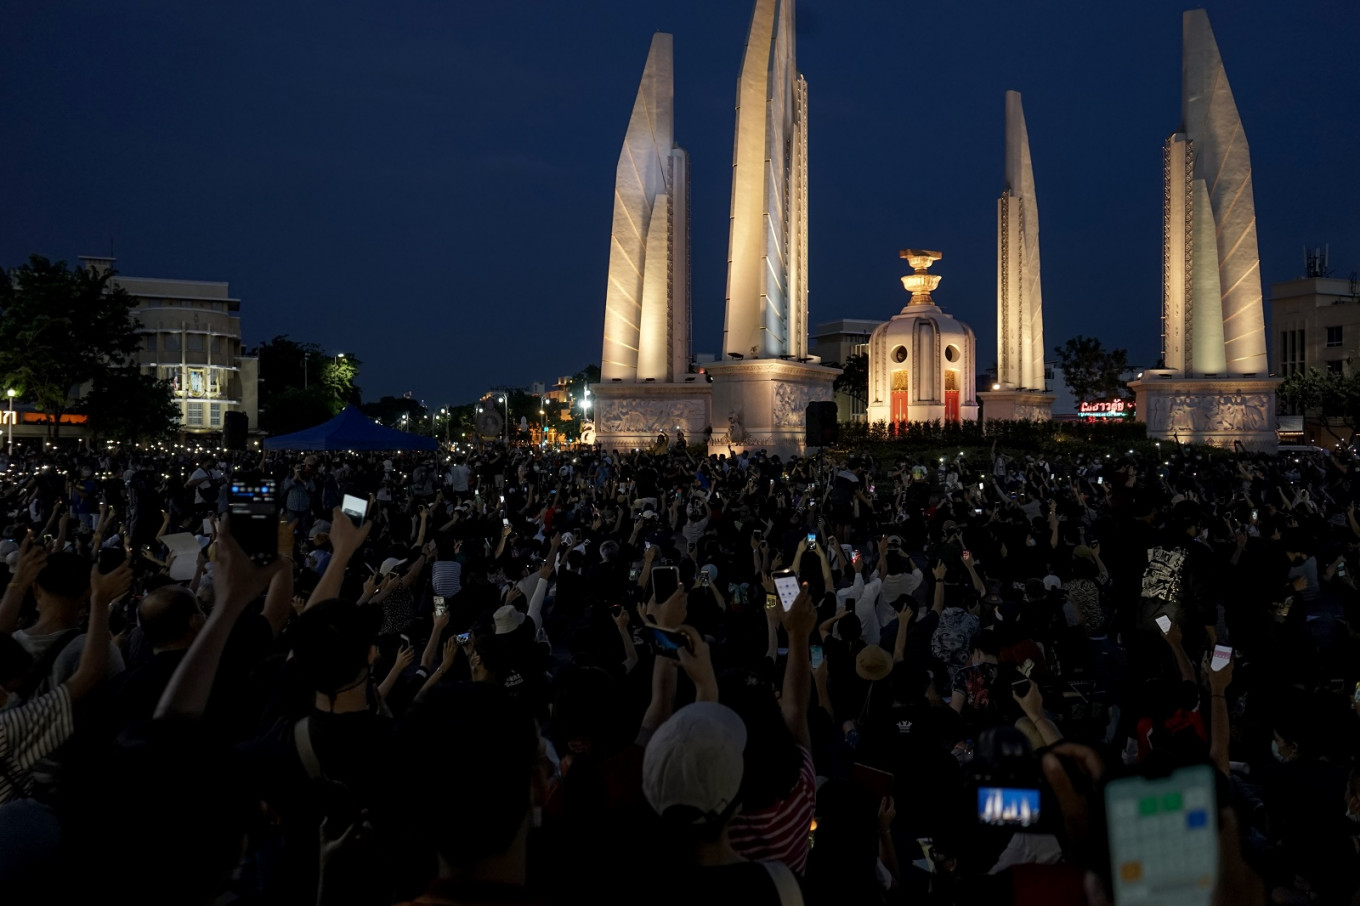 Thai pro-government group warns of danger to the nation from student protests